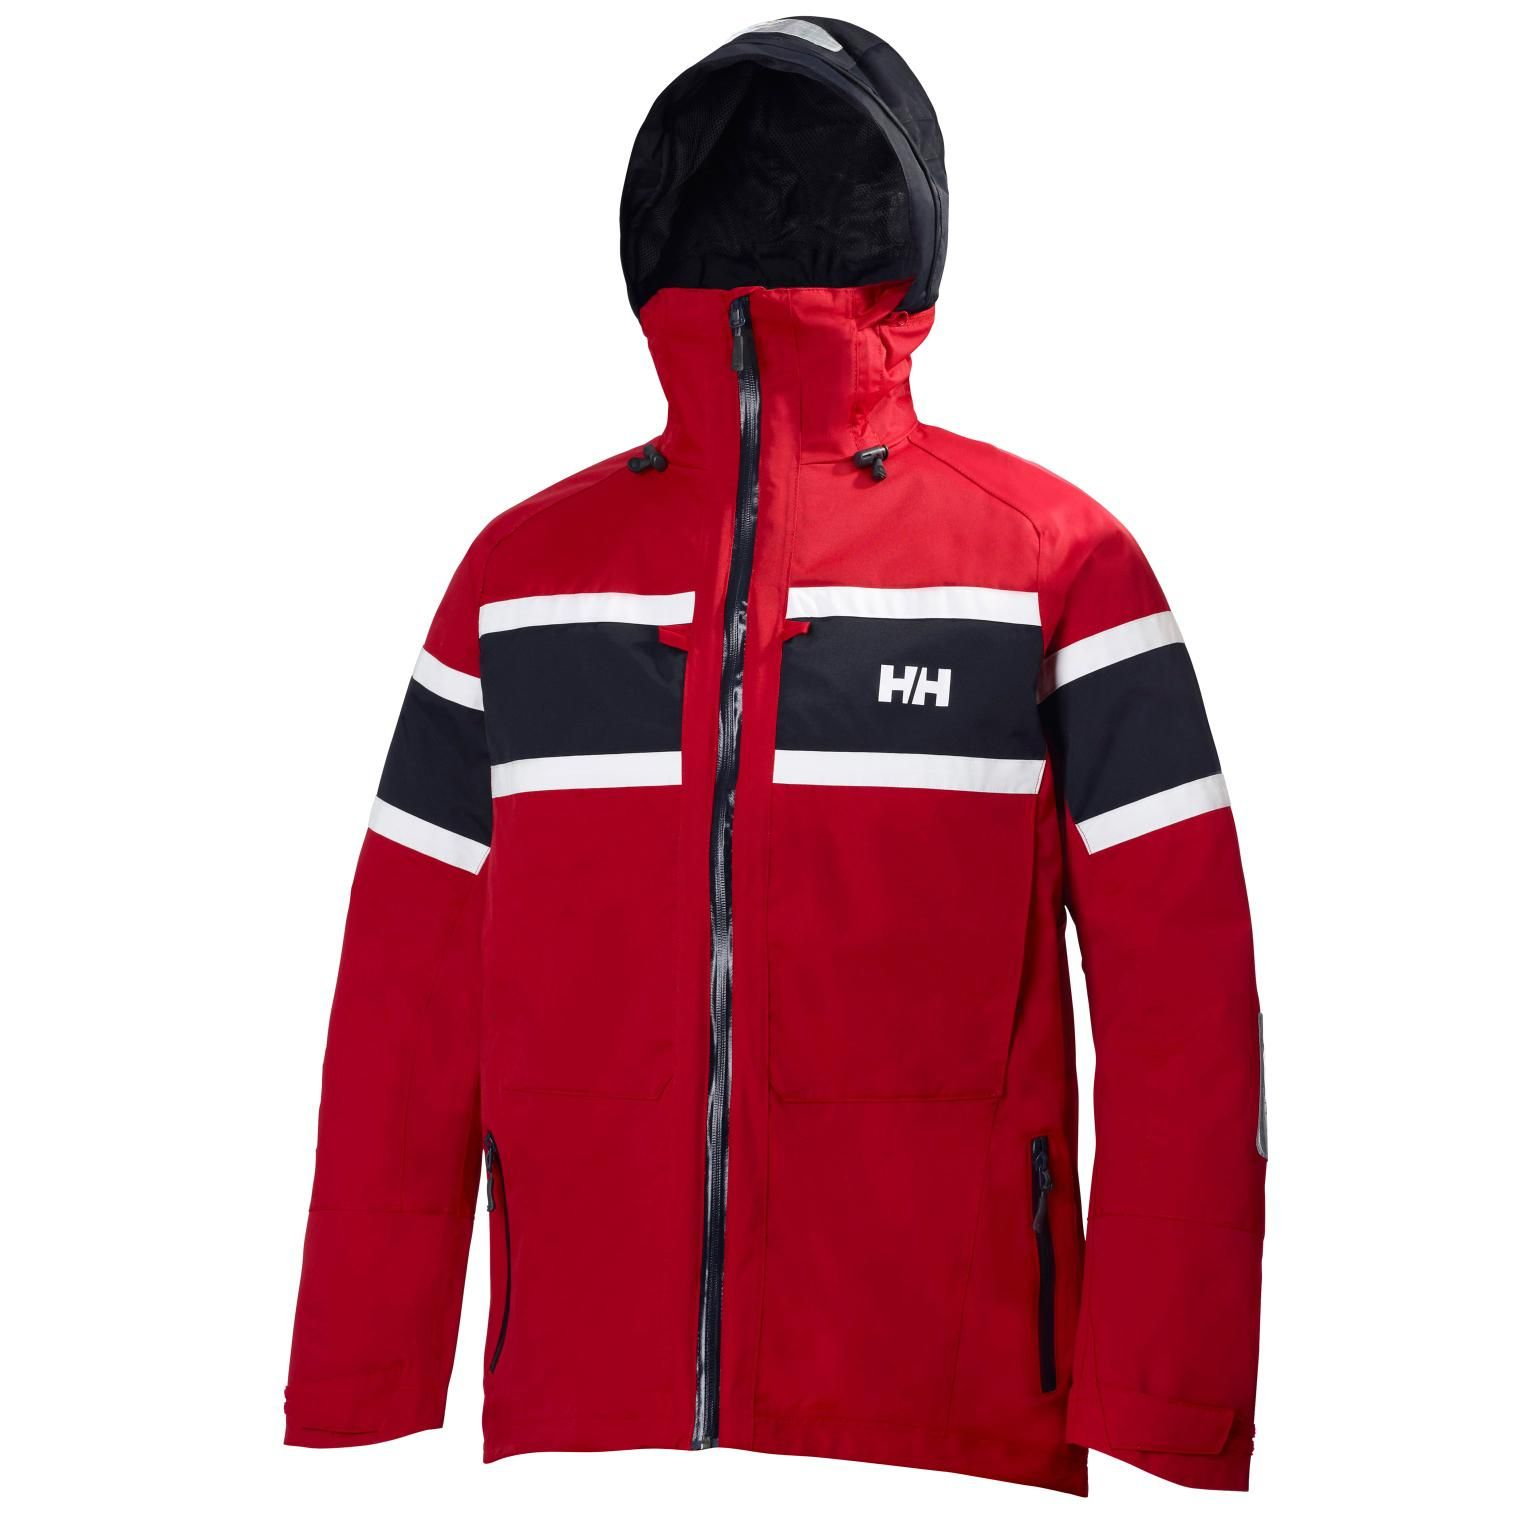 Salt Jacket - Helly Hansen Sailing Collection #hellyhansen #sailing #salt #jackets